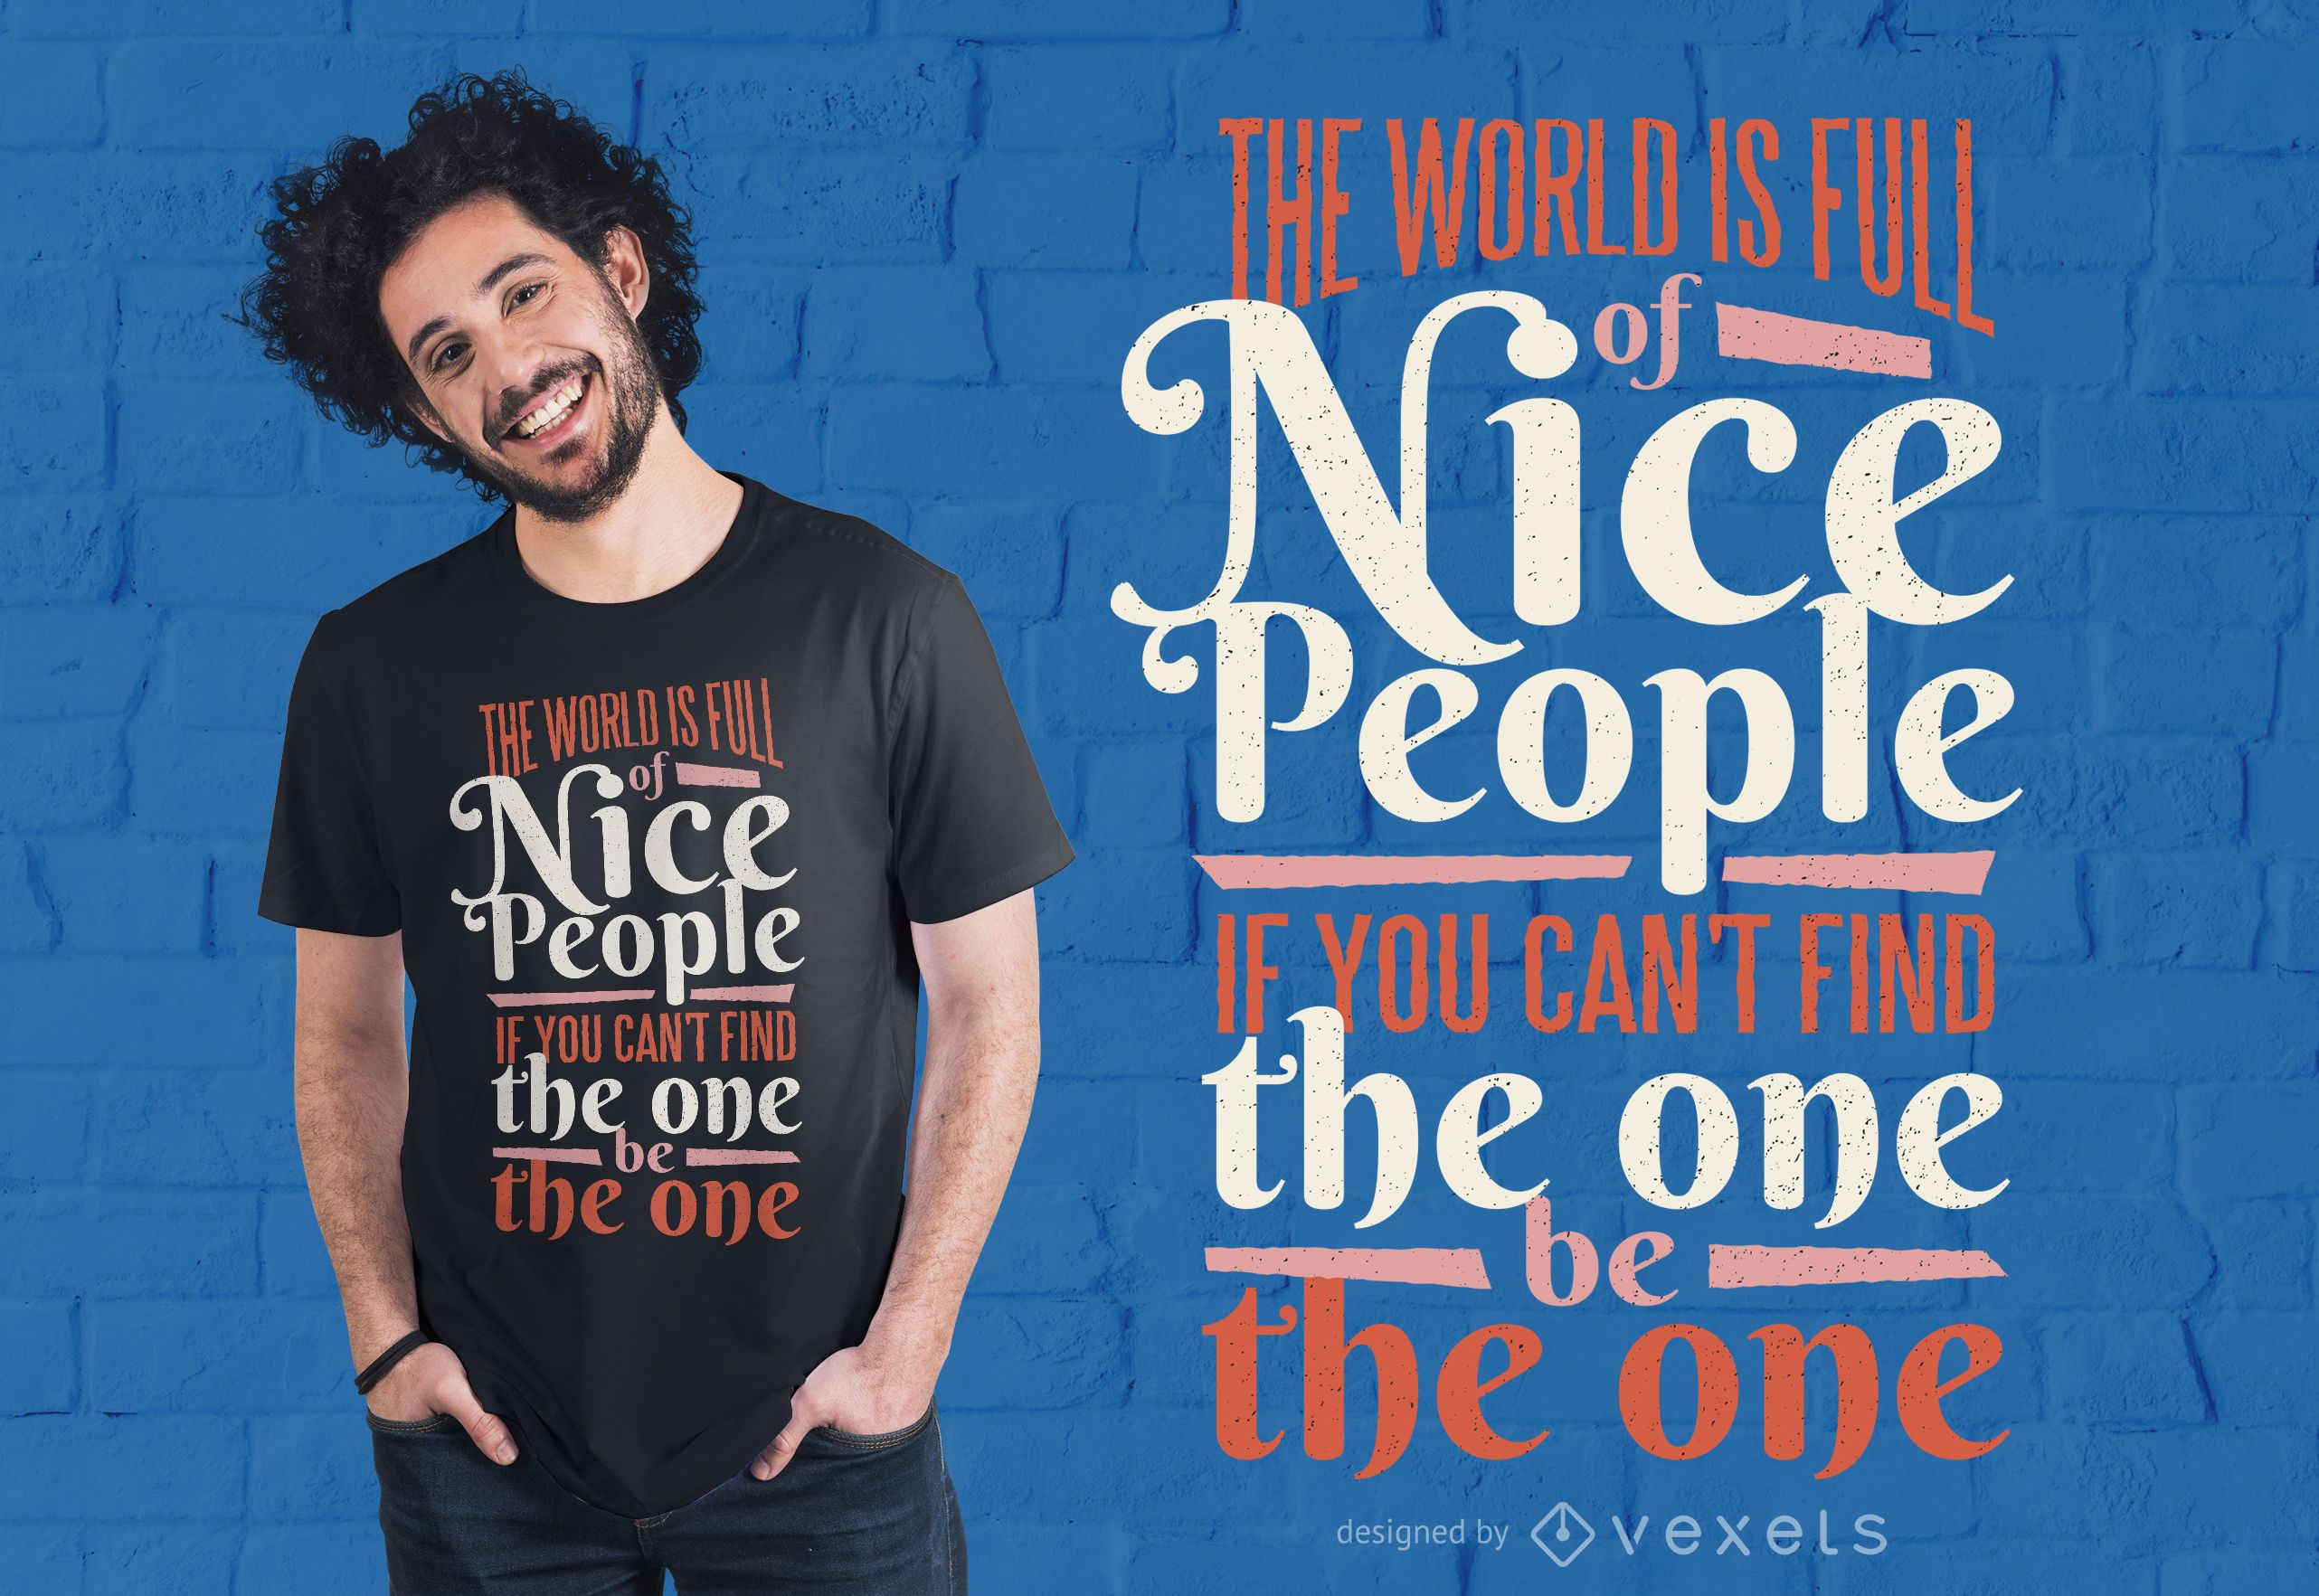 The World is Full of Nice People T-shirt Design